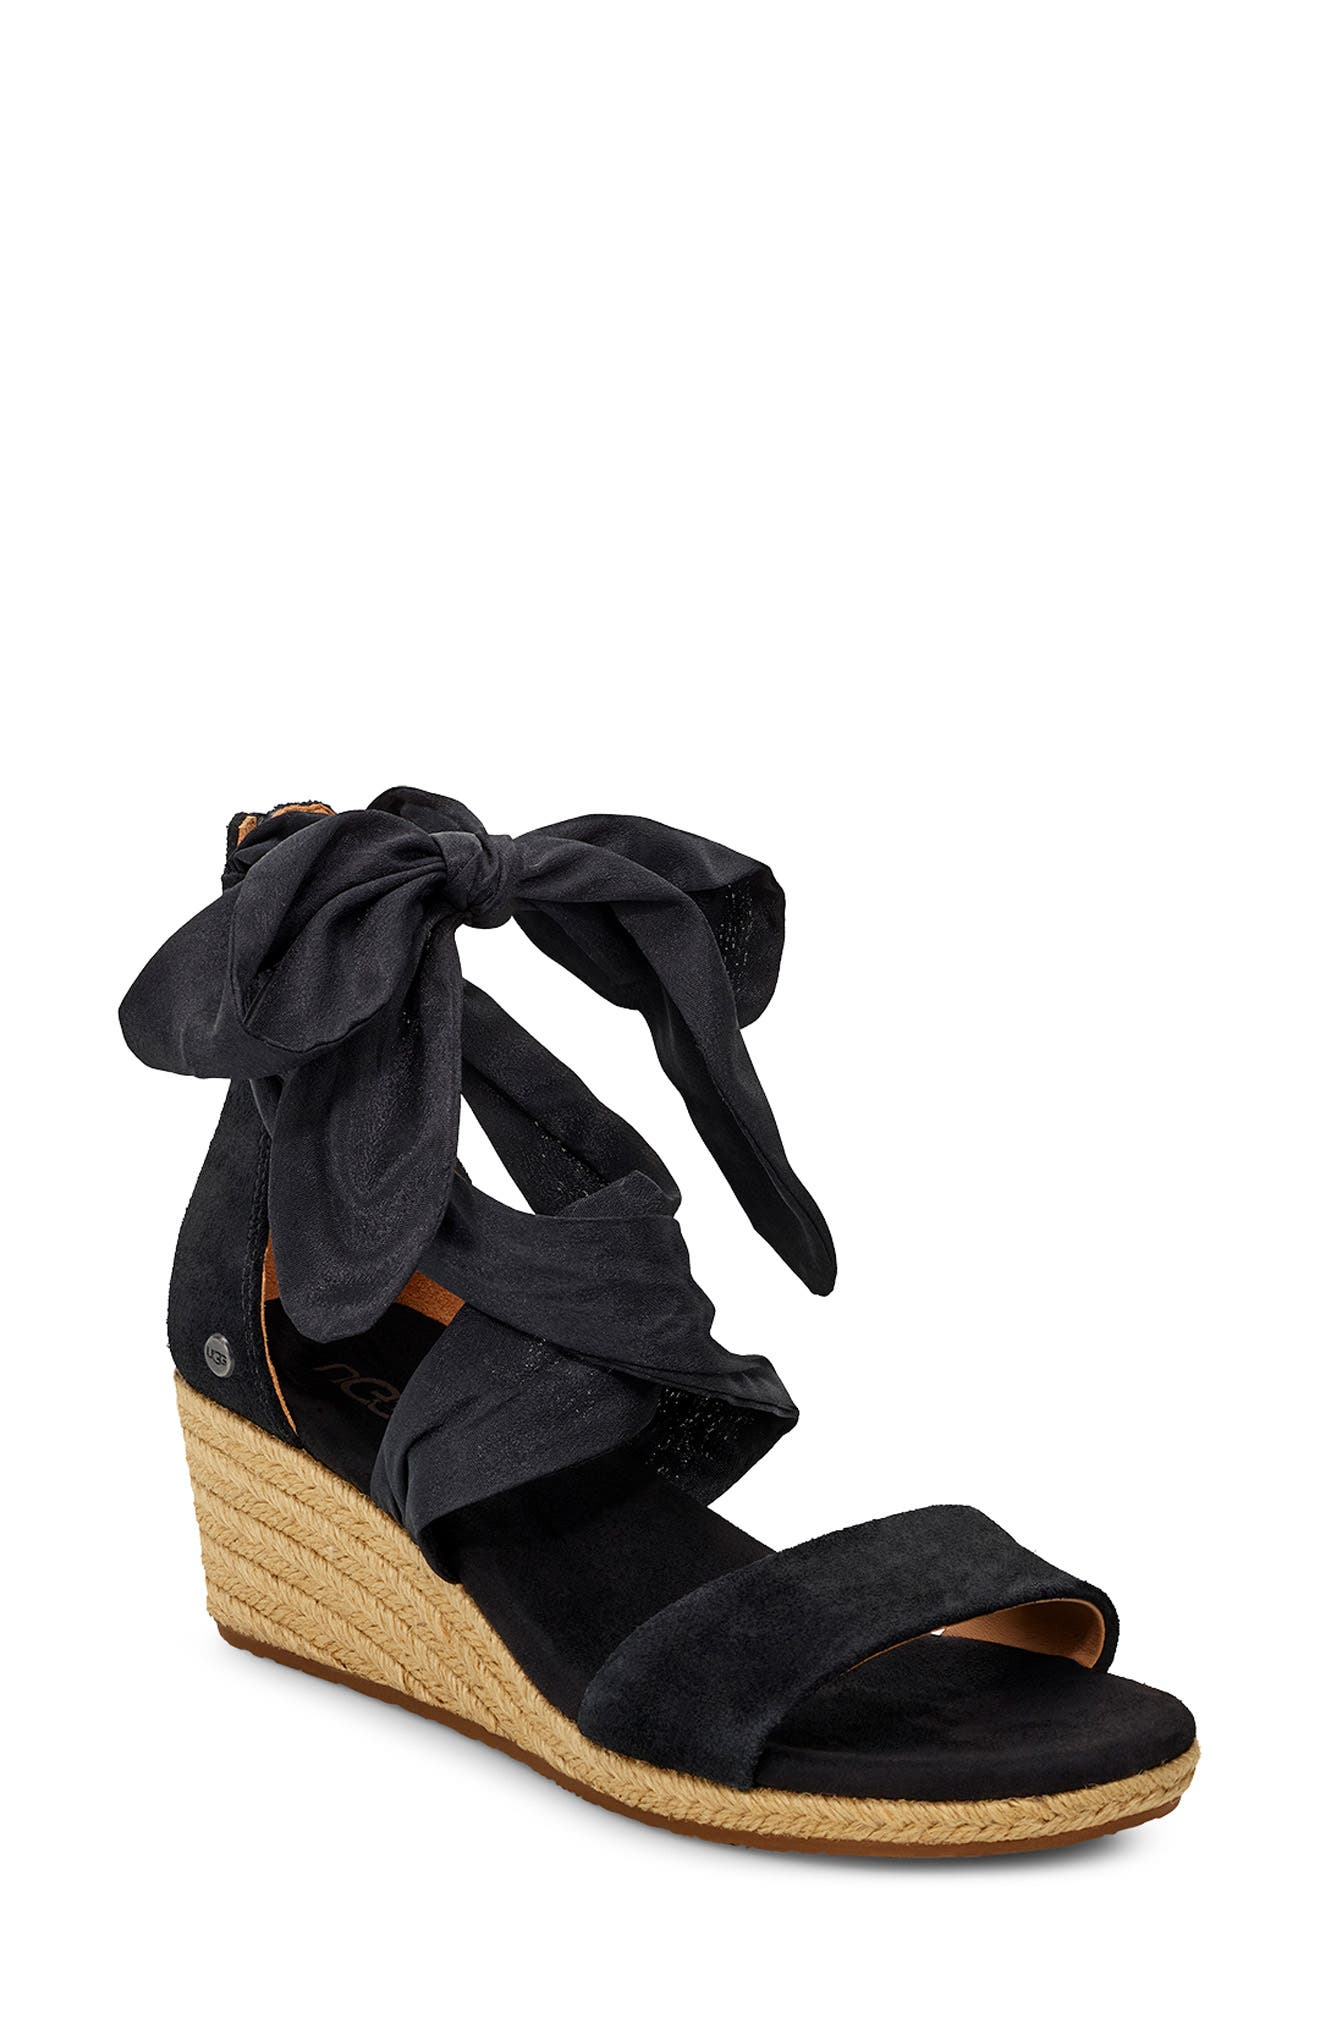 UGG<SUP>®</SUP>, Trina Ankle Tie Wedge Sandal, Main thumbnail 1, color, BLACK LEATHER